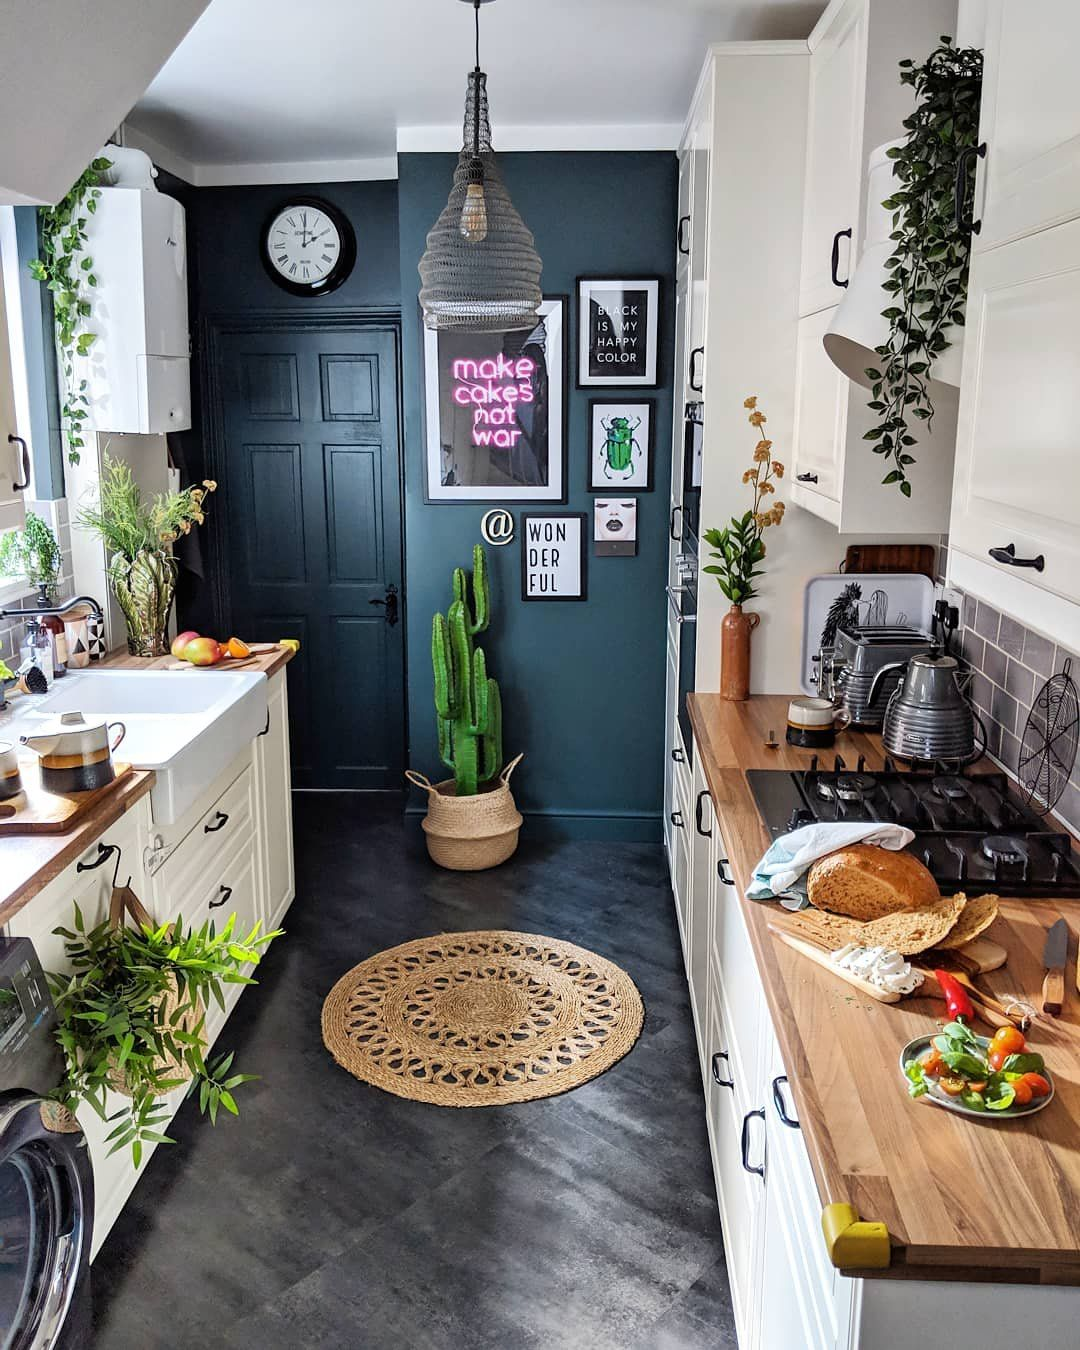 Find Tons Of Decor Inspiration In This Quirky And Colorful Uk Home Kitchen Design Small Home Decor Bright Homes